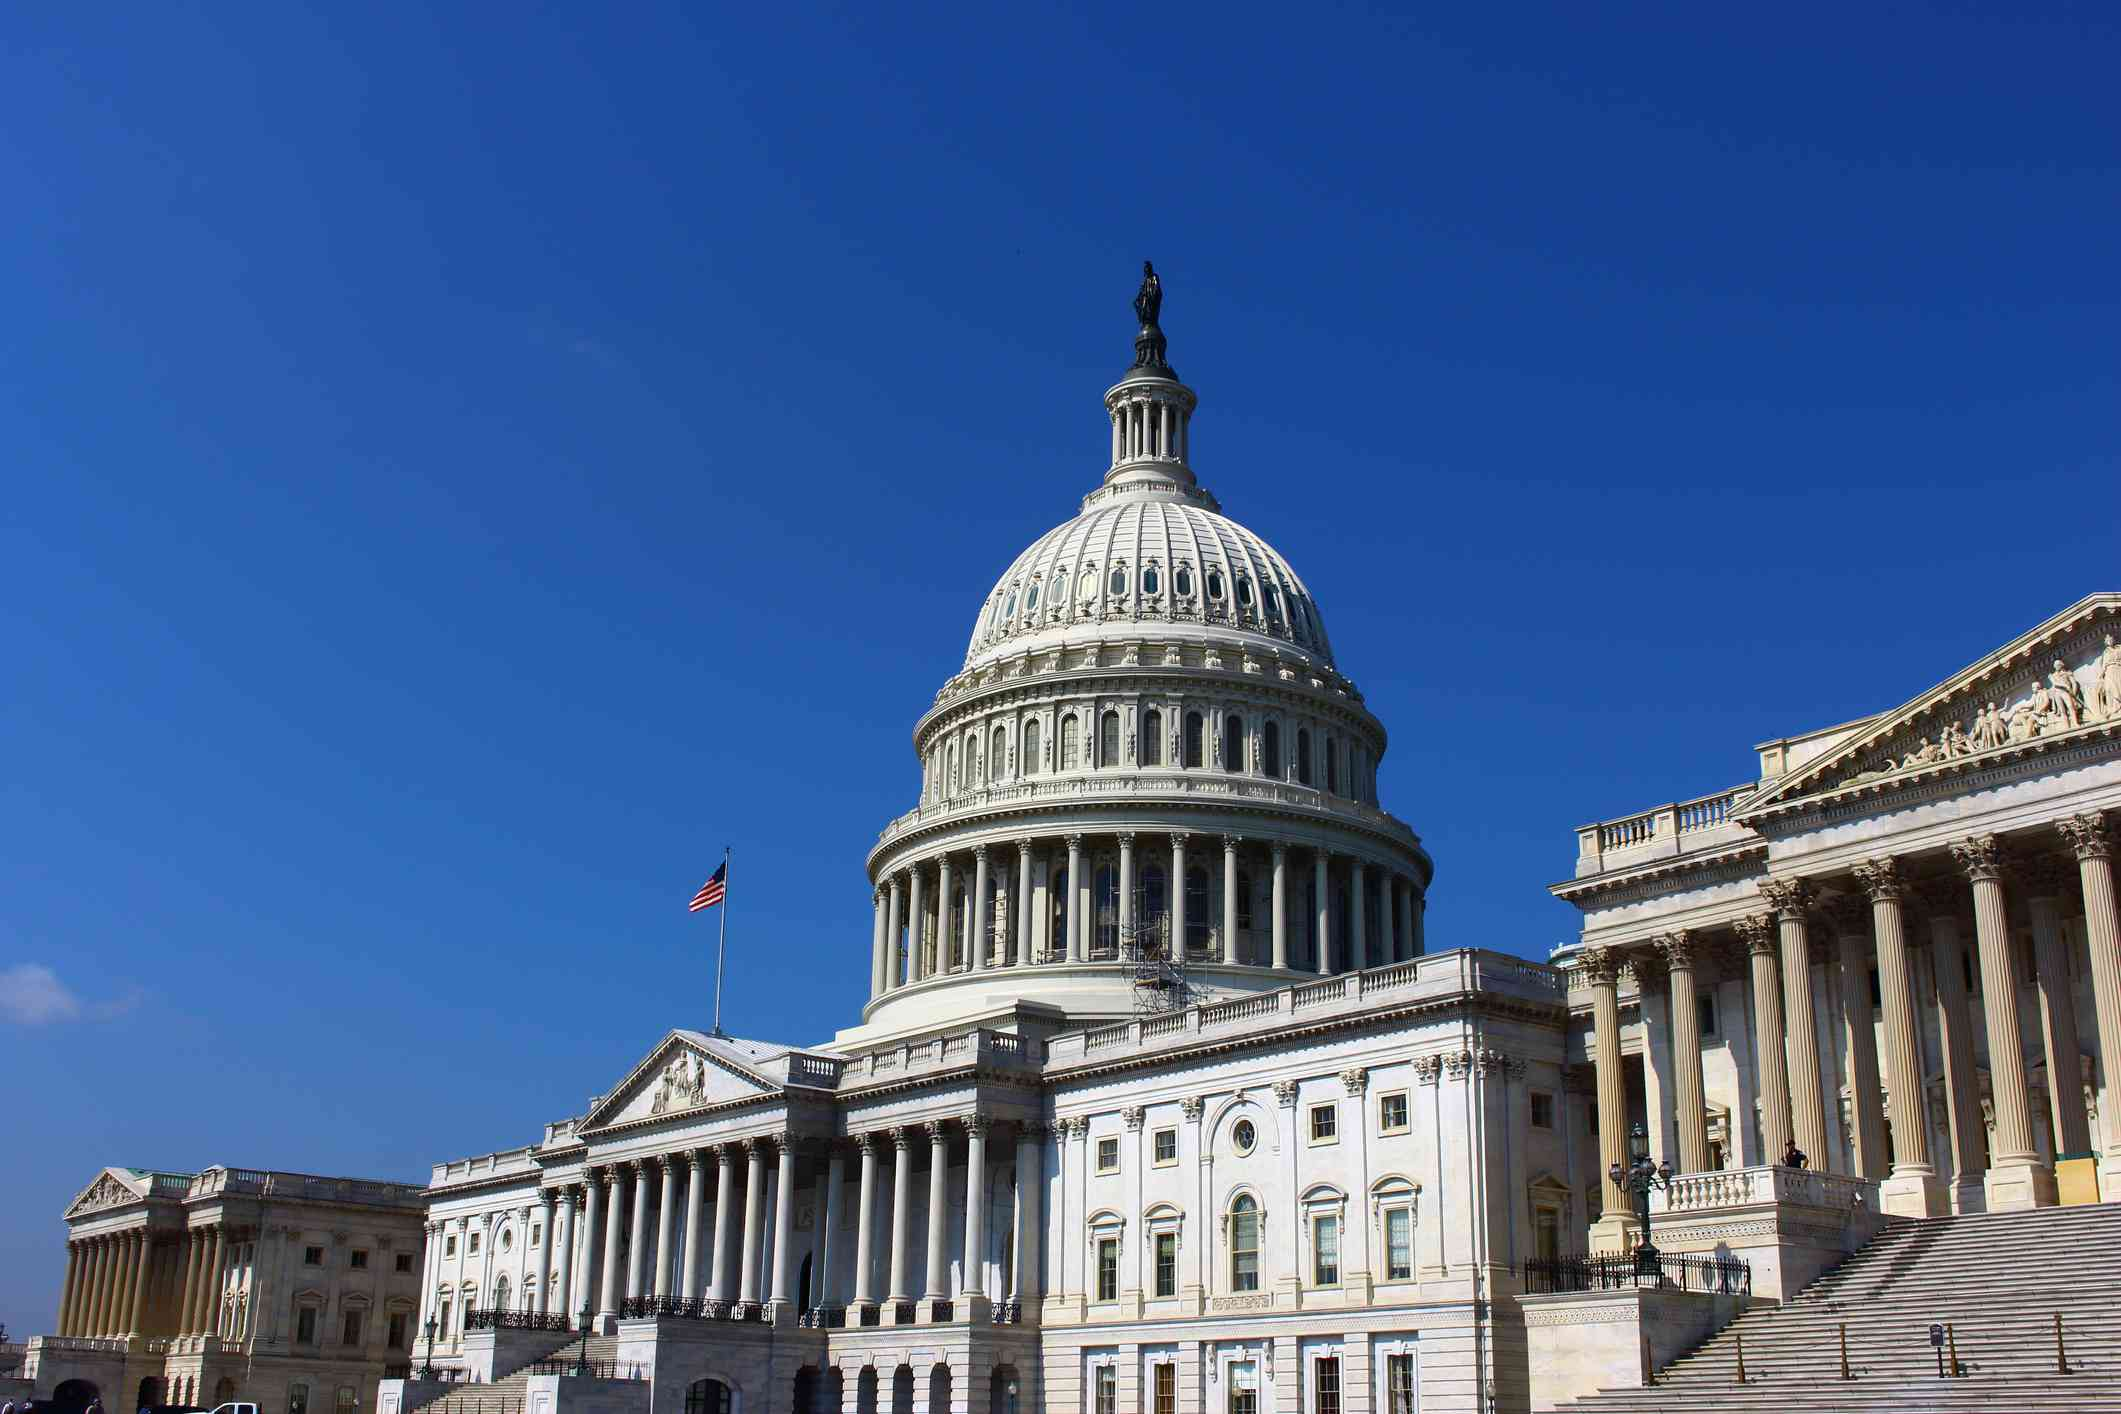 Low angle view of Capitol building in Washington D.C. against a clear blue sky